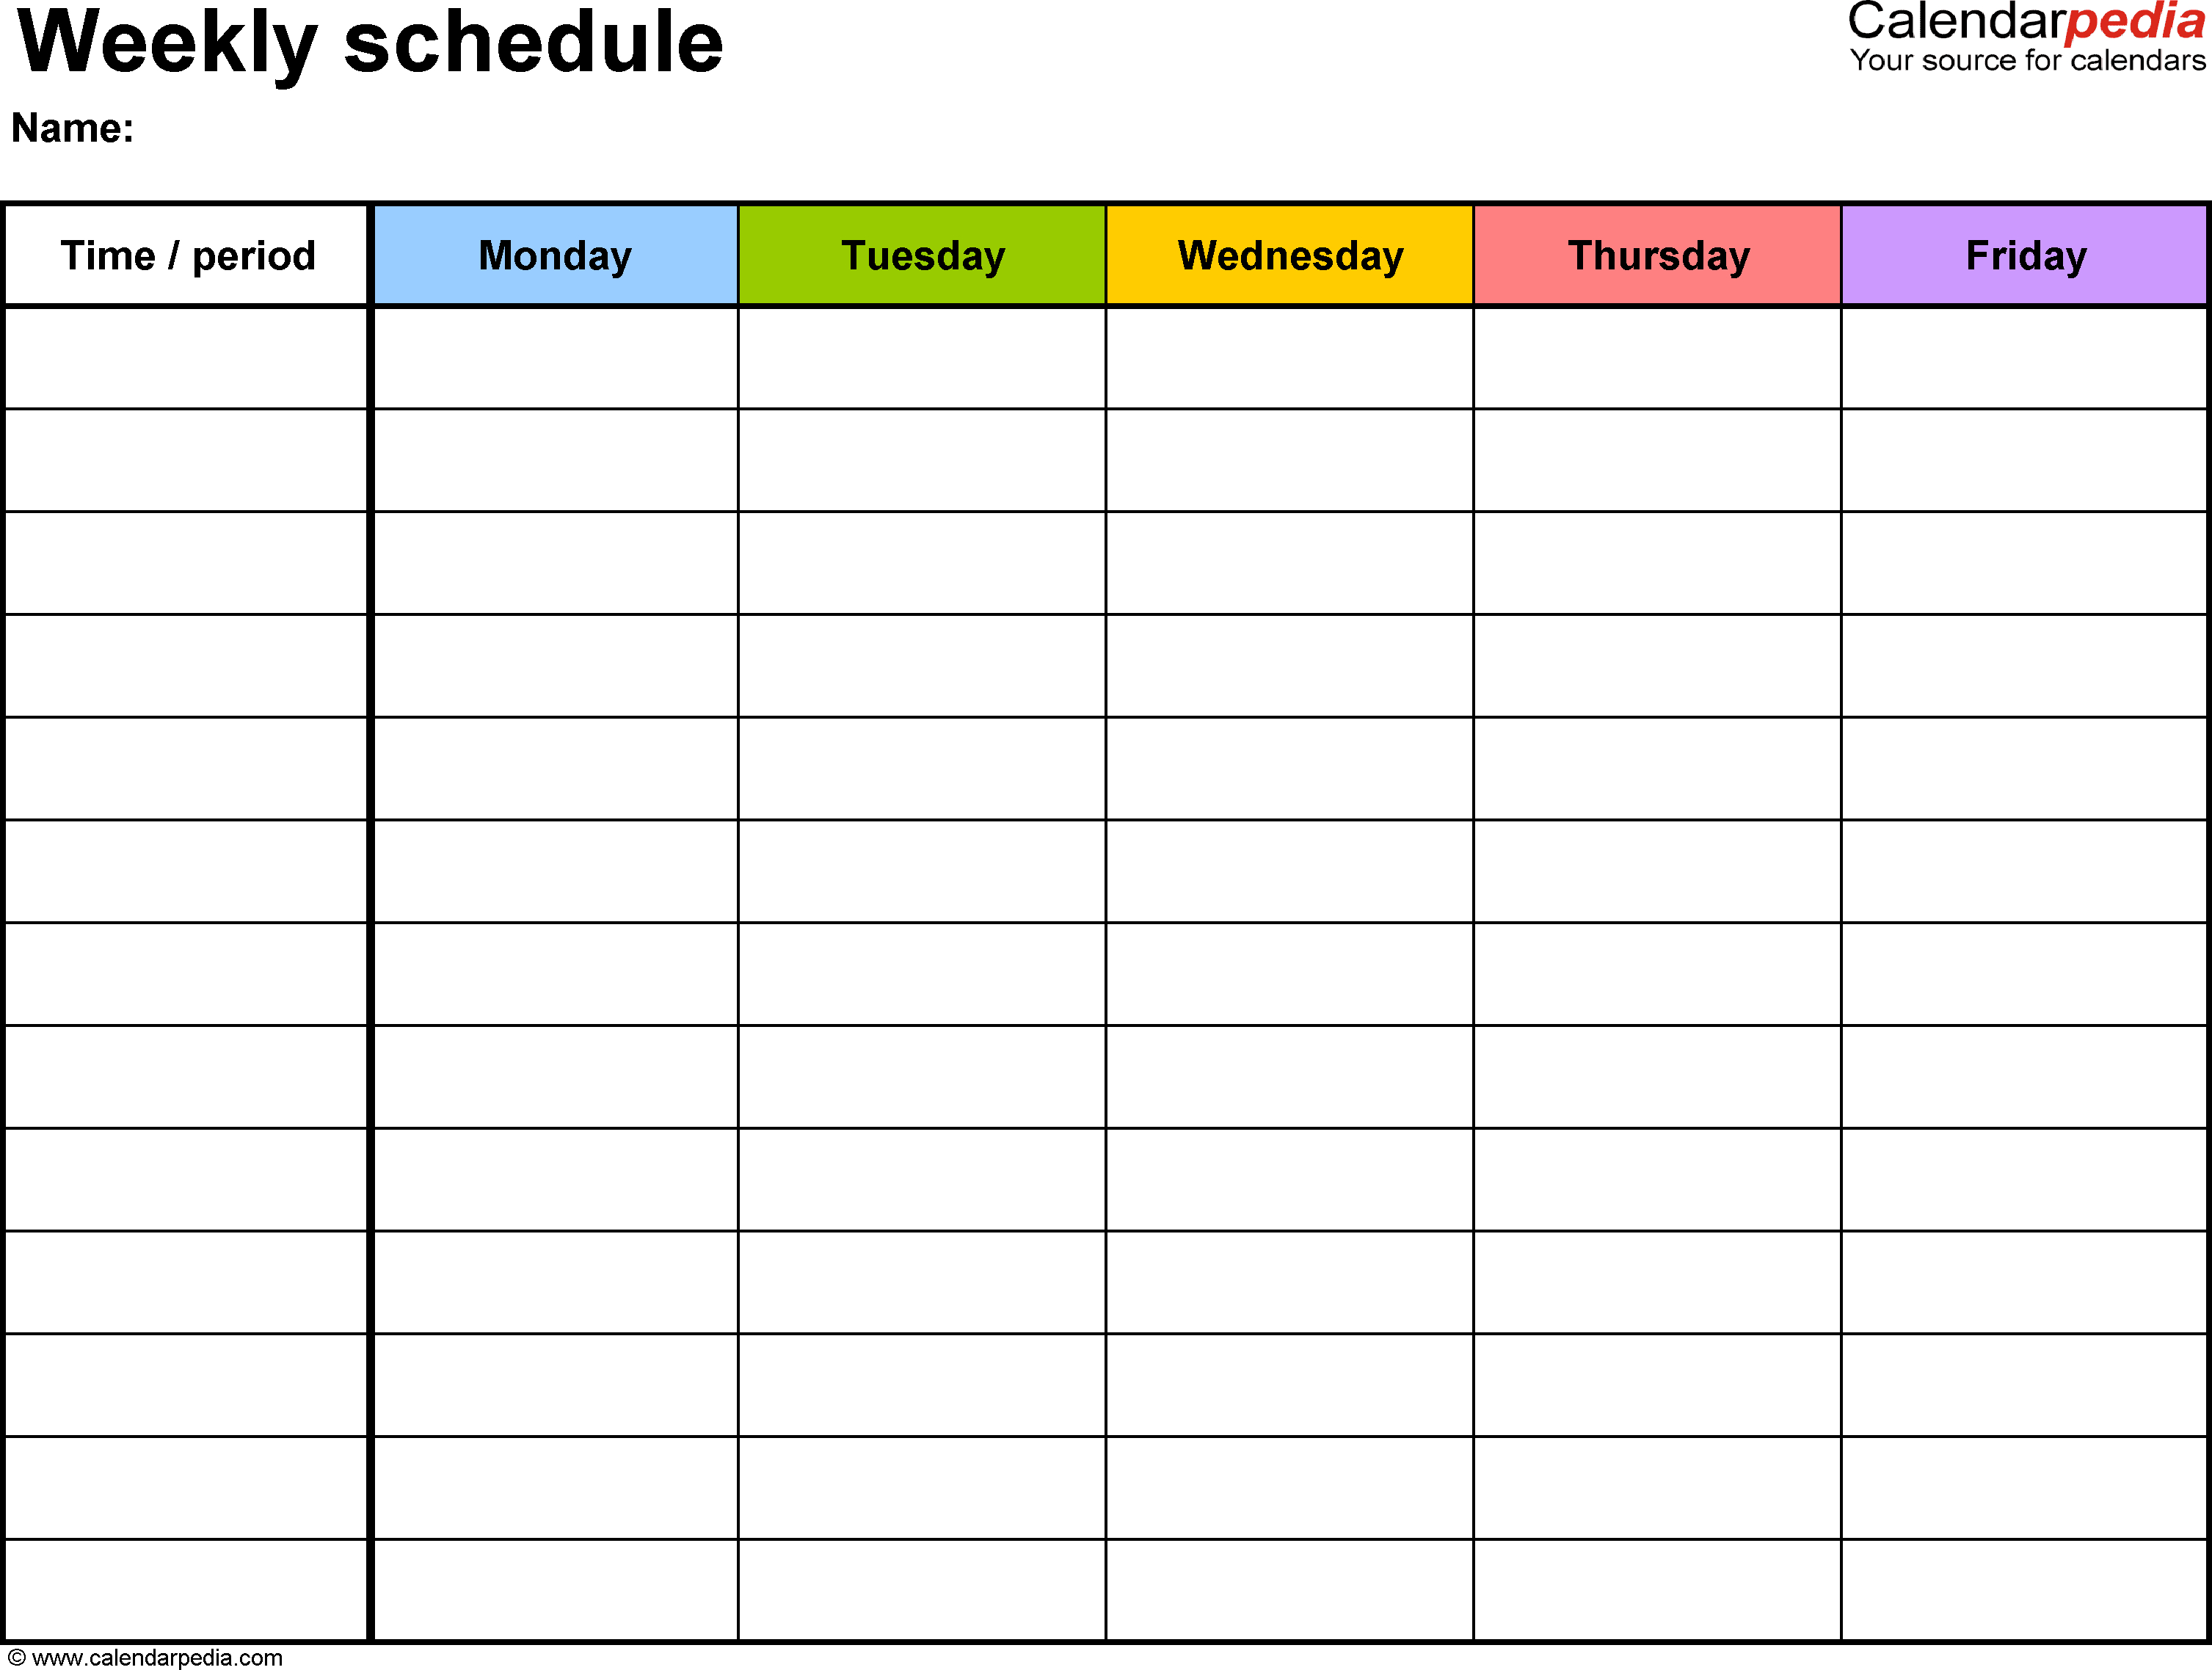 Free Weekly Schedule Templates For Word - 18 Templates inside Blank Calendar Template Monday To Friday Only